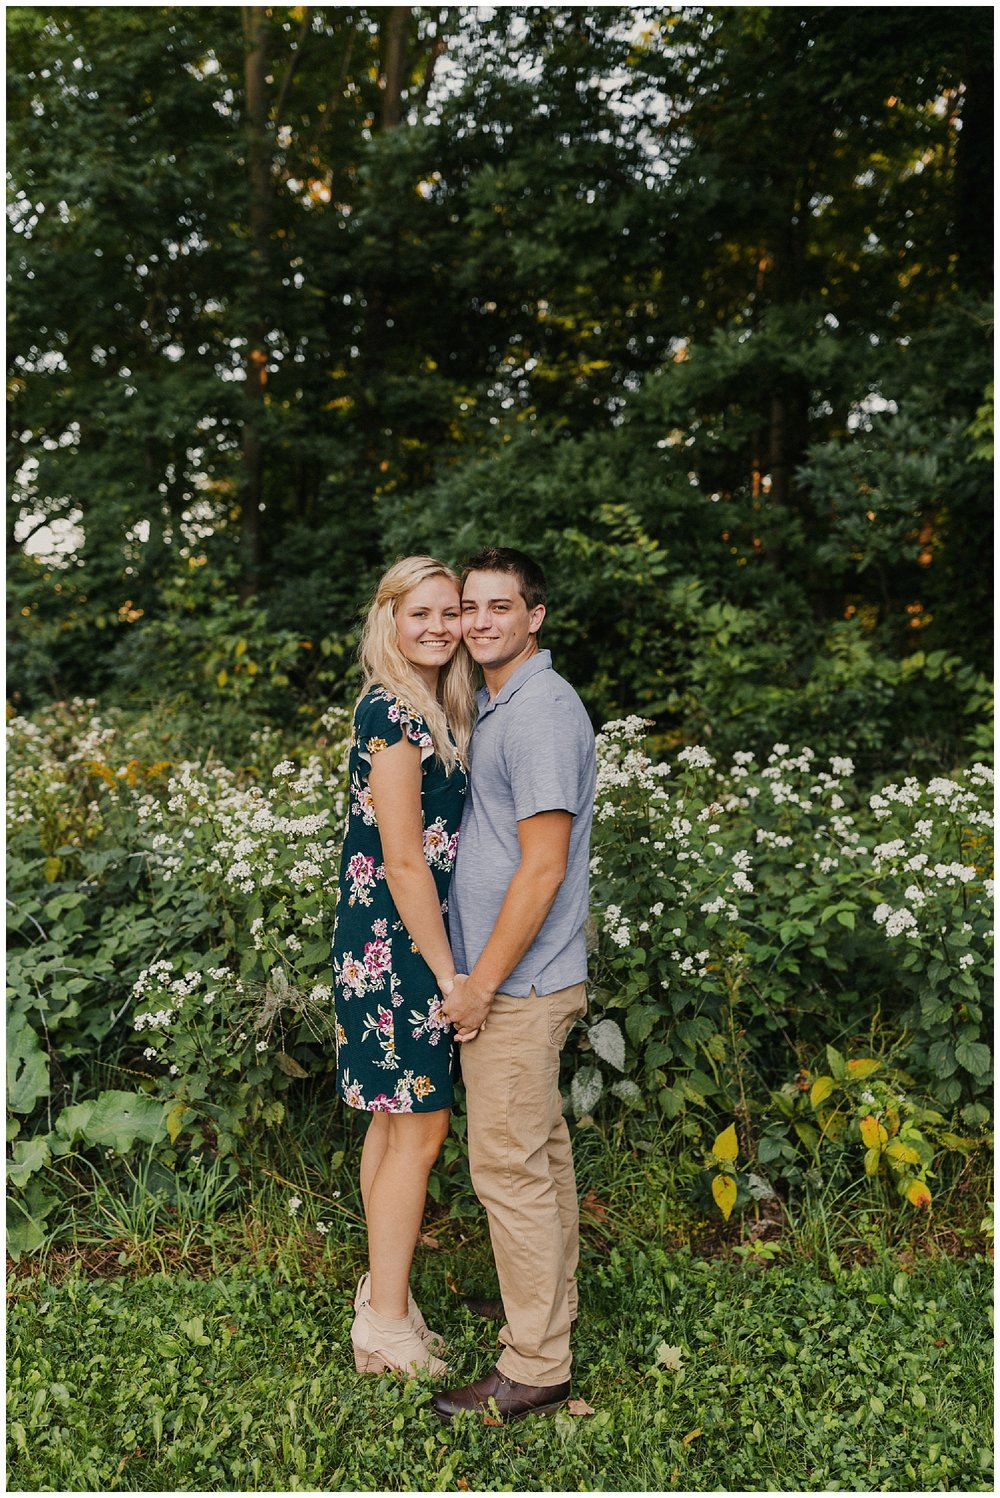 lindybeth photography - engagement pictures - lily derek-19.jpg